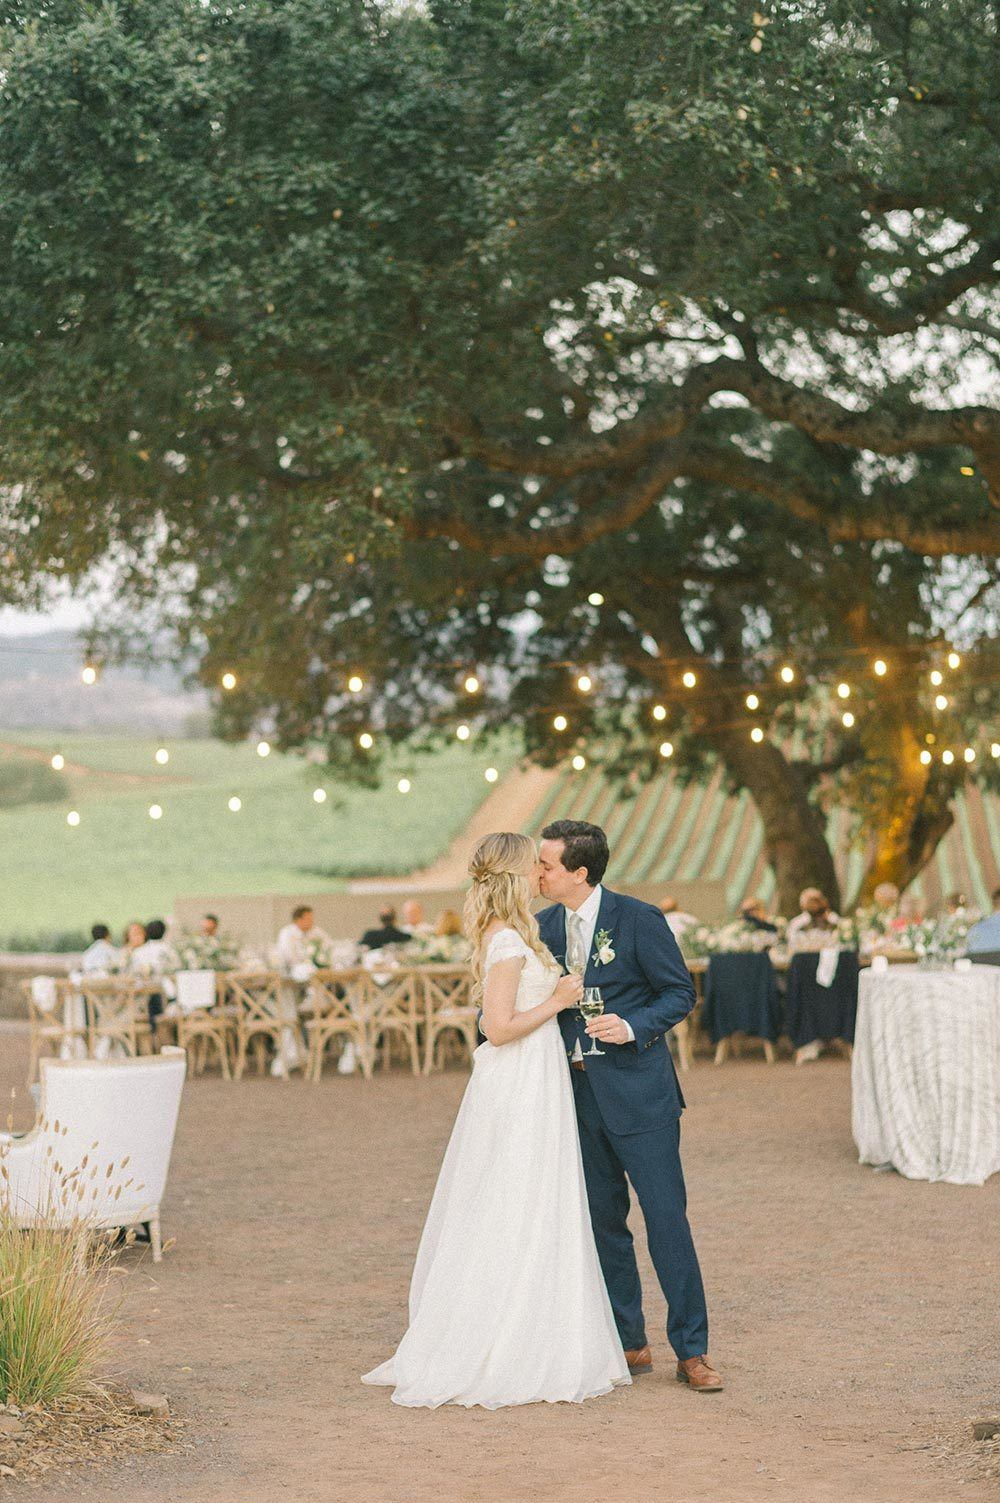 Sonoma Valley wedding al fresco reception with market lights and bride and groom